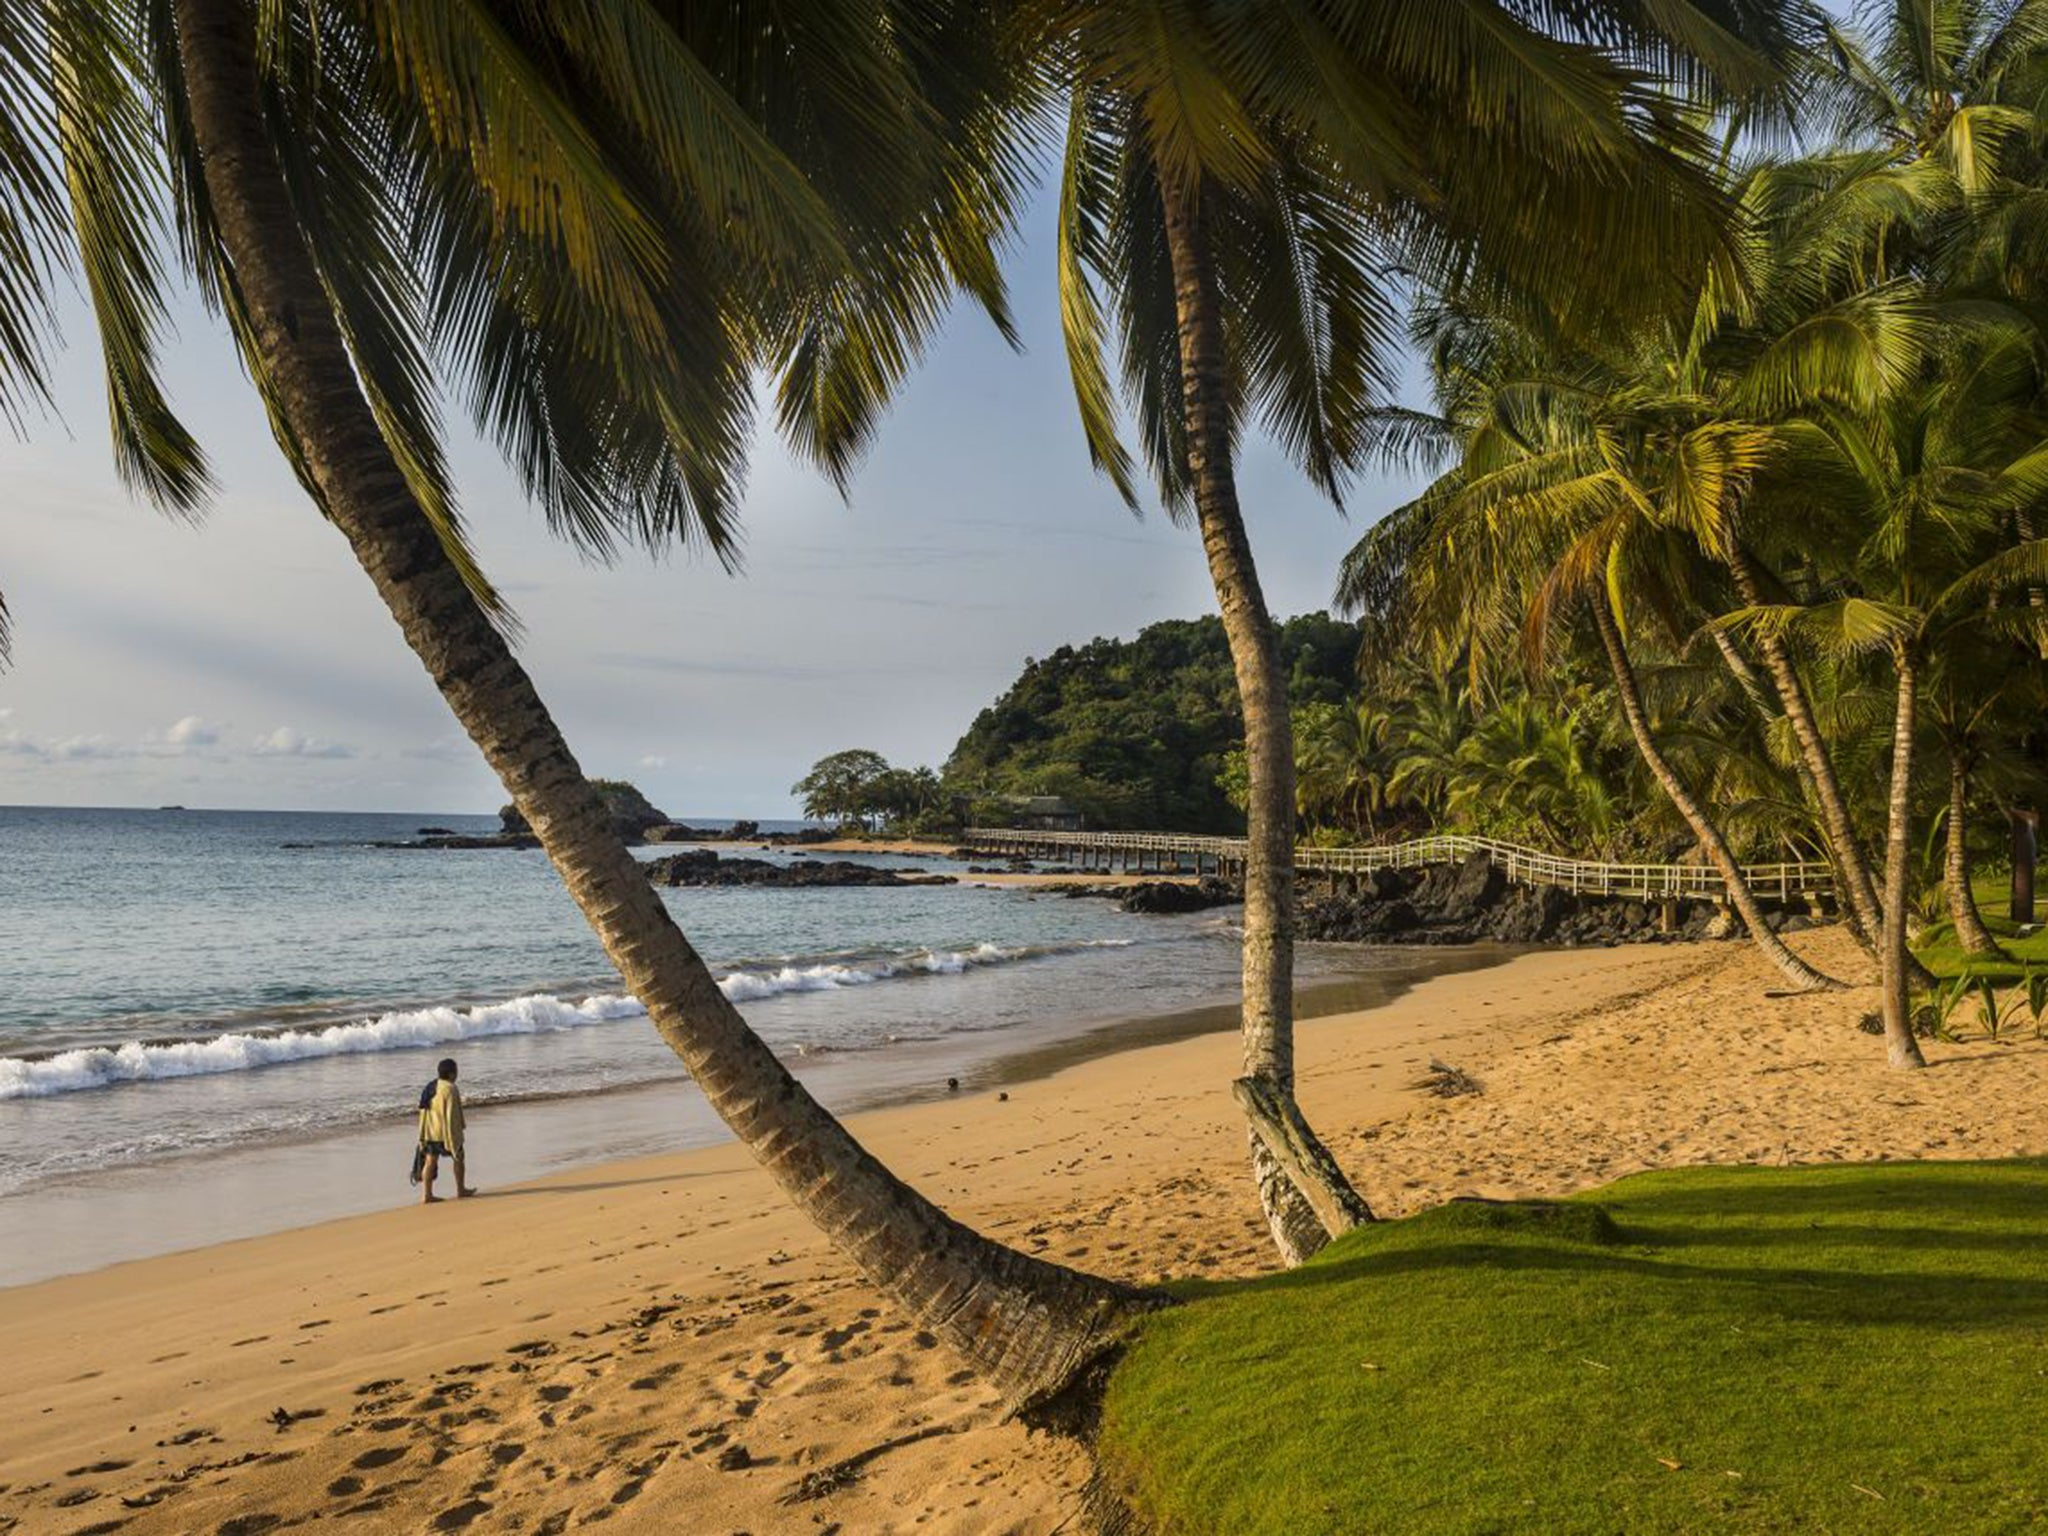 São Tomé: How the tiny island plans to become the 'Dubai of Africa' after securing Chinese investment